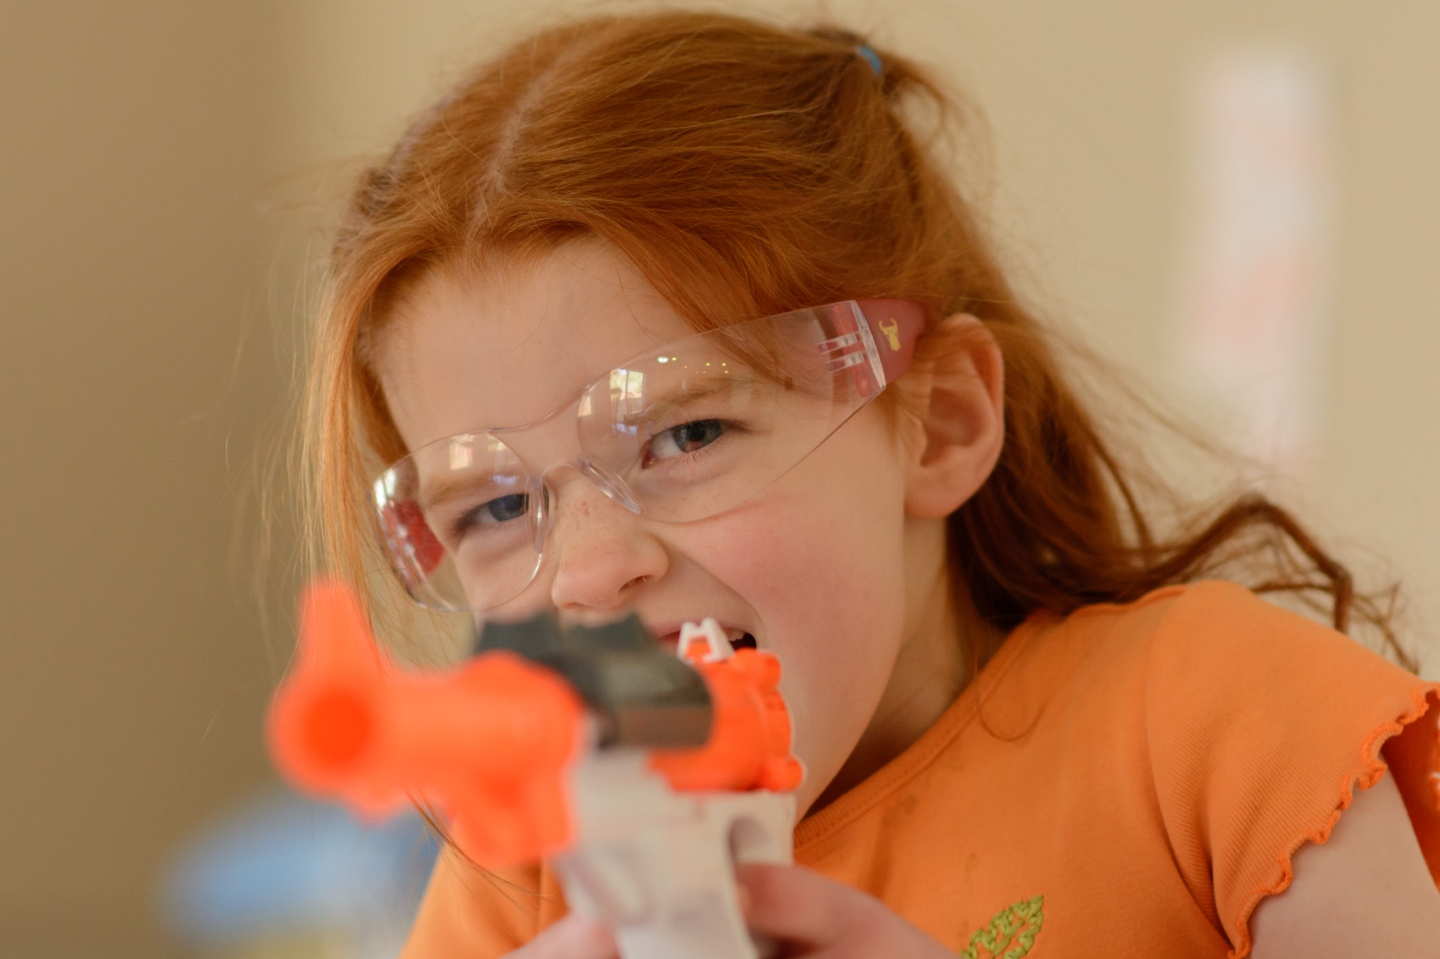 girl pointing nerf gun at camera